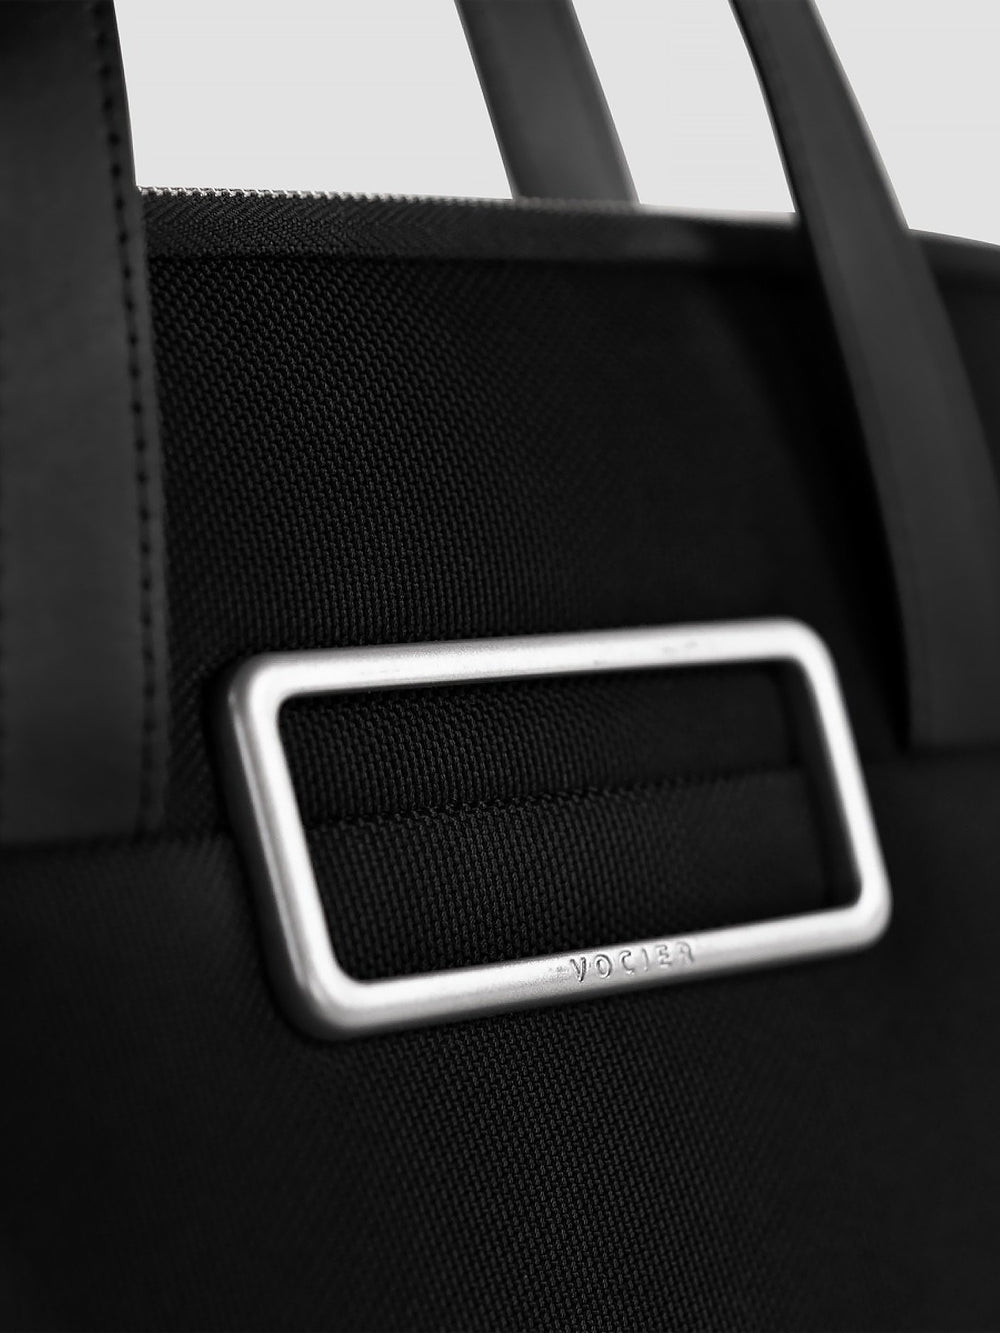 avant briefcase for women leather details